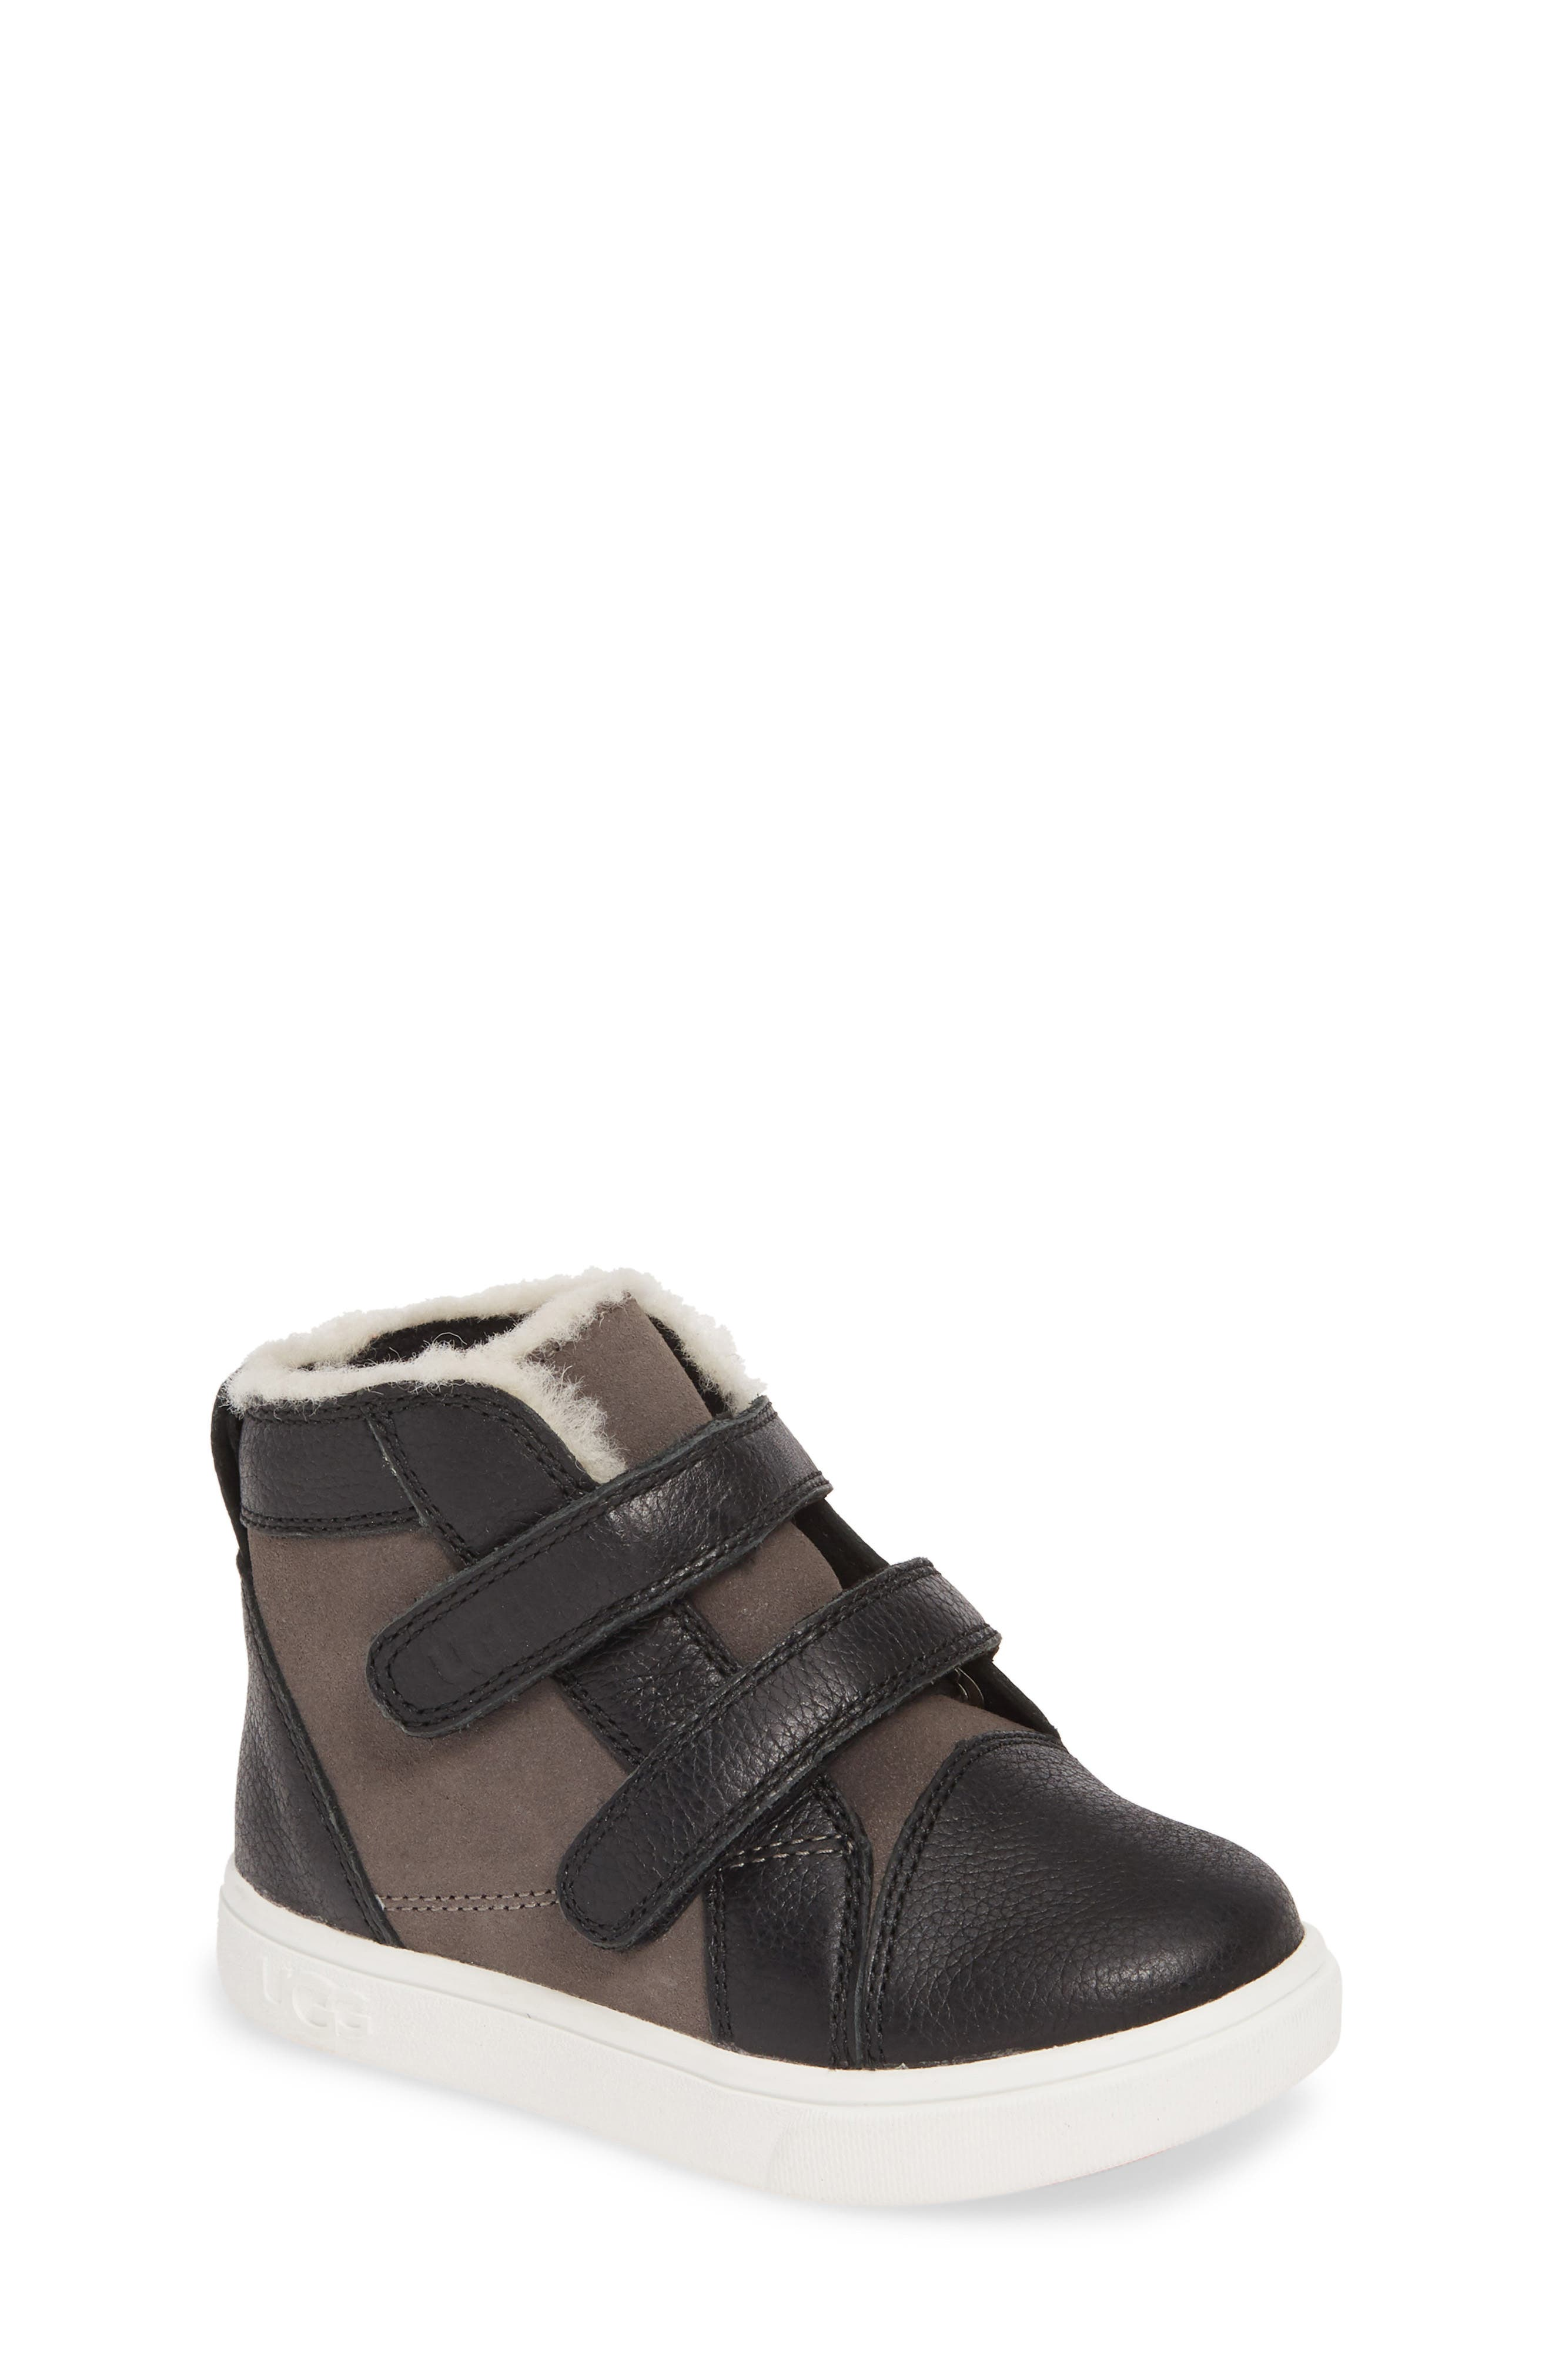 Toddler Boys Ugg Rennon High Top Sneaker